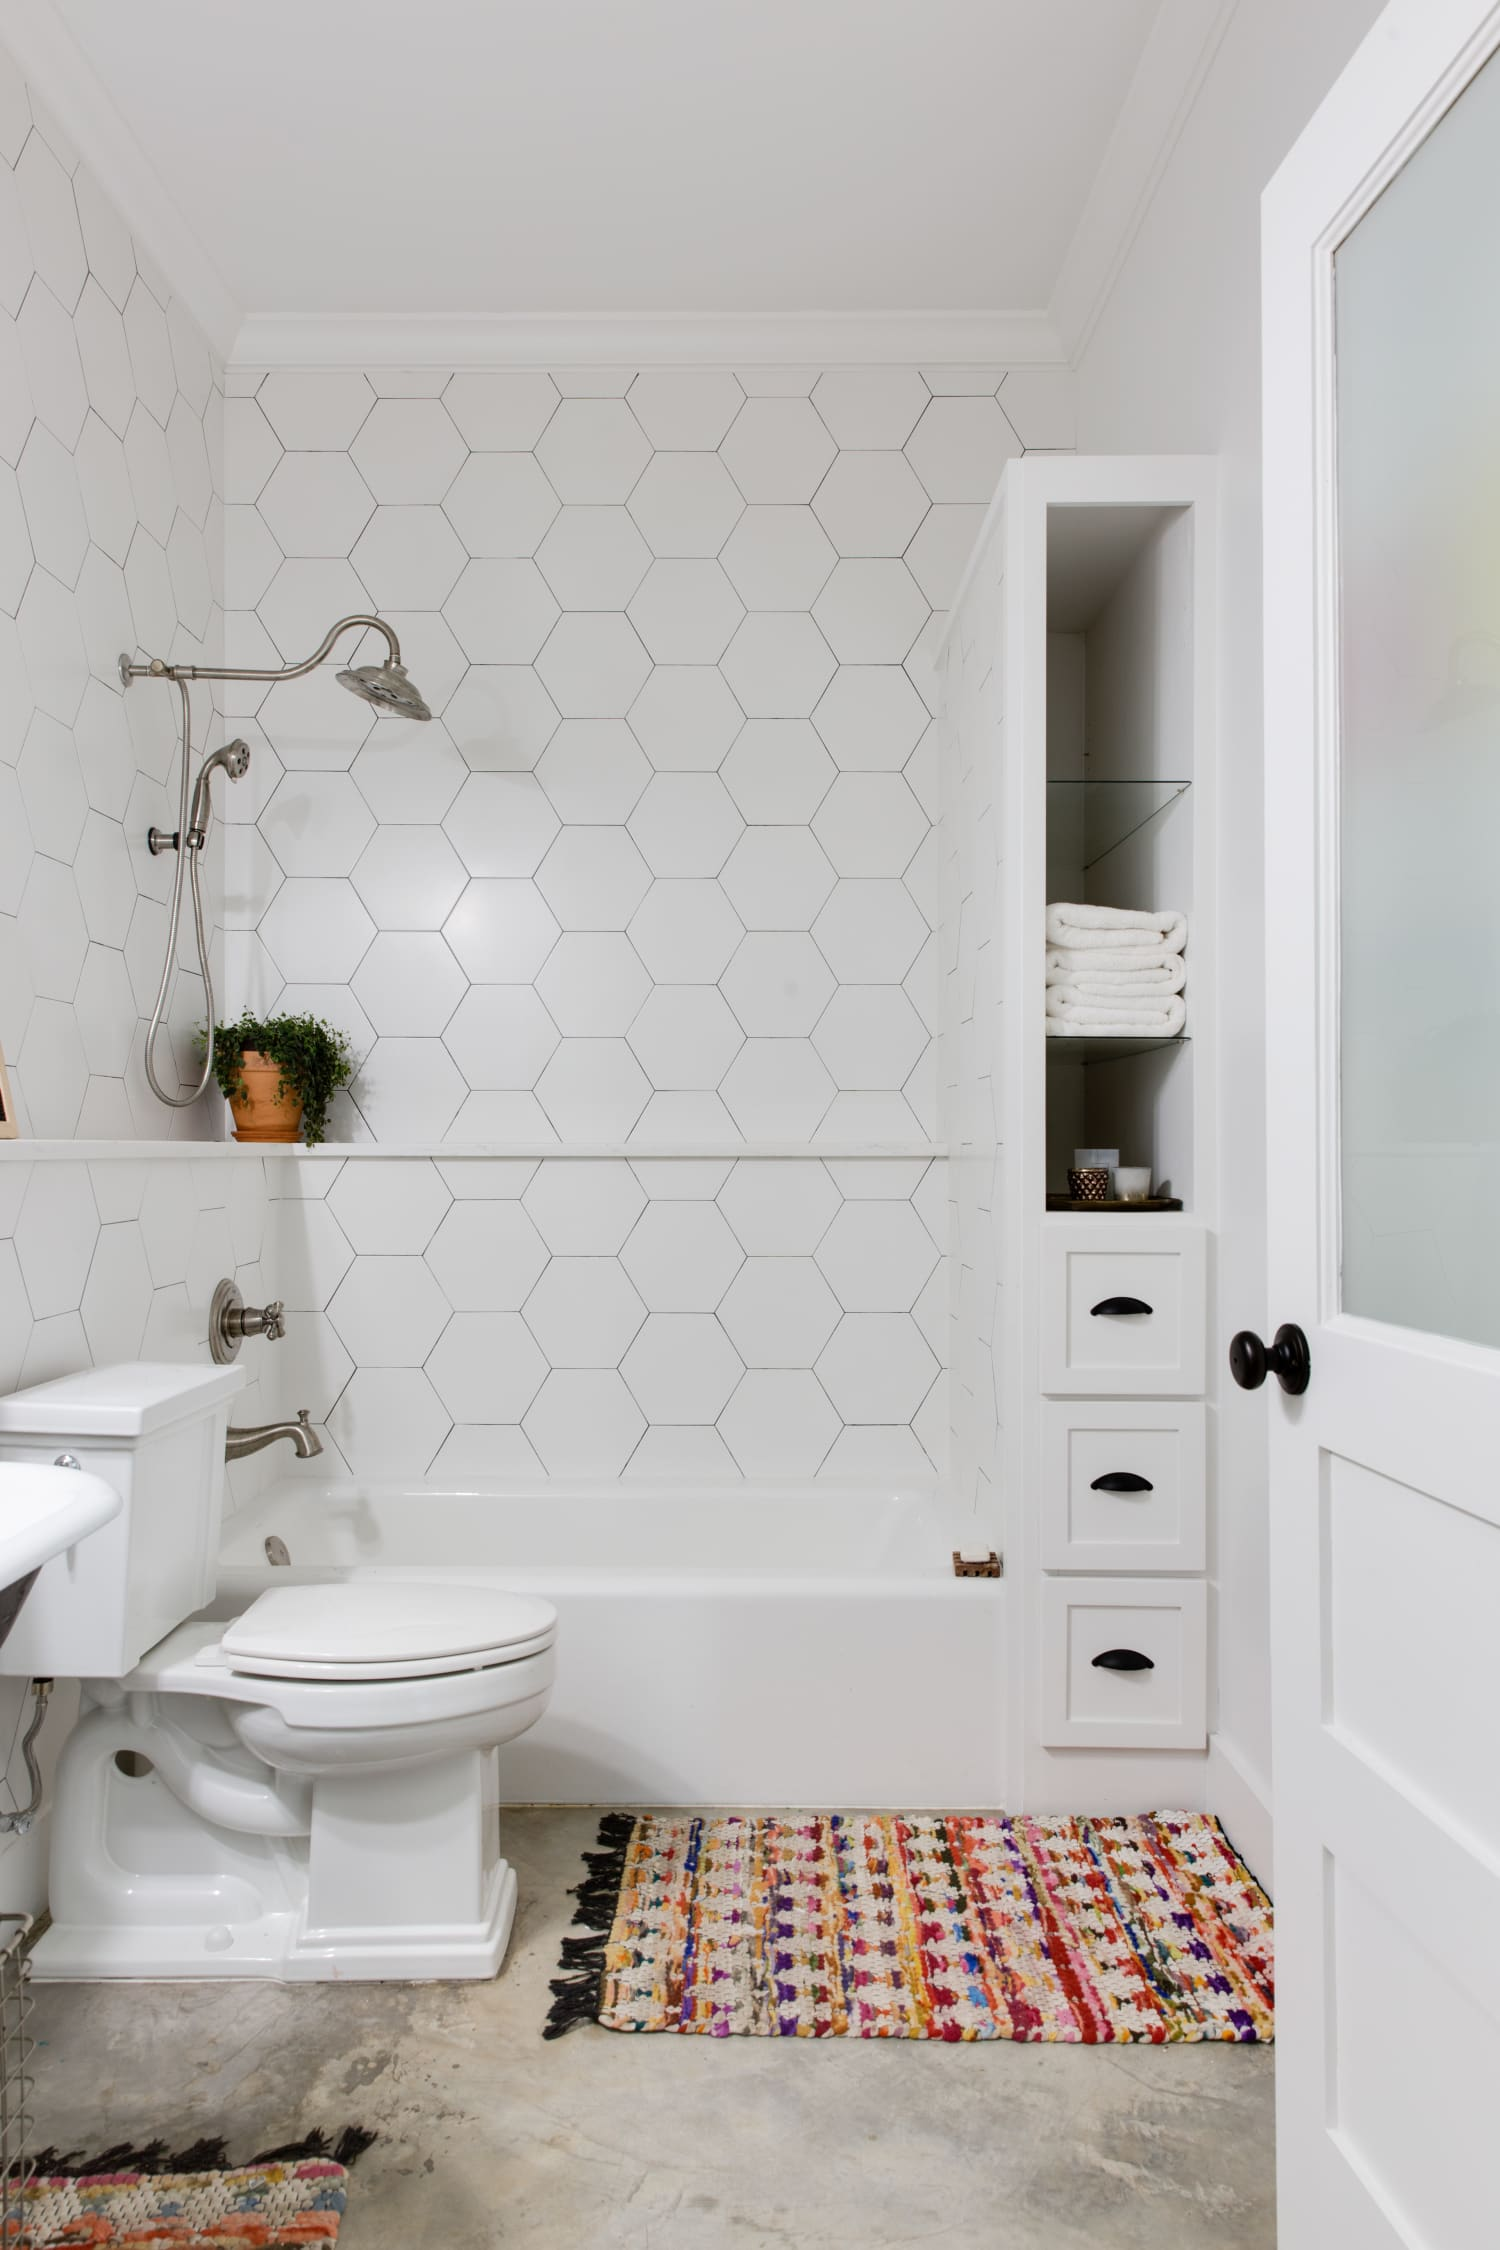 10 Ways Adhesive Strips and Hooks Can Organize Your Whole Bathroom